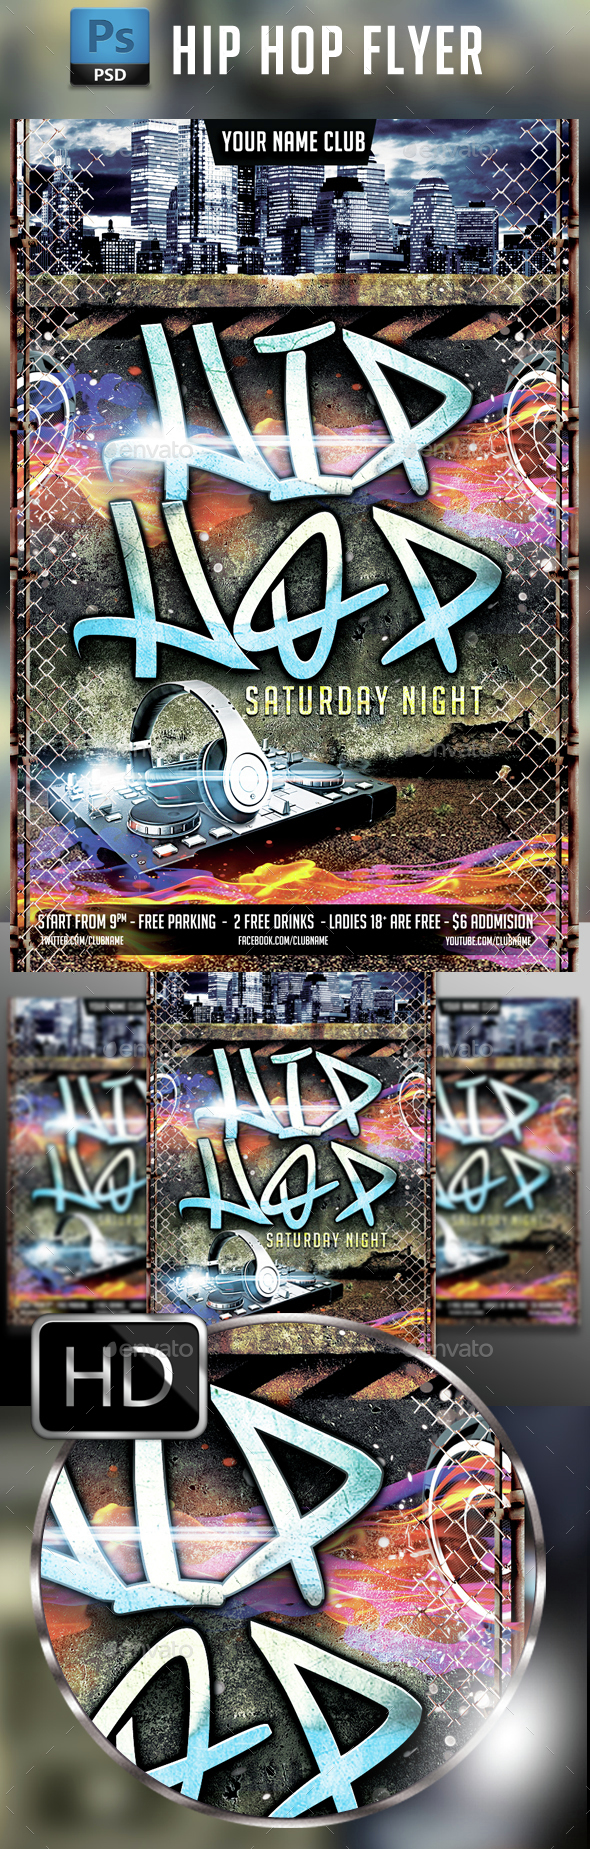 Hip Hop Flyer Template #4 - Events Flyers